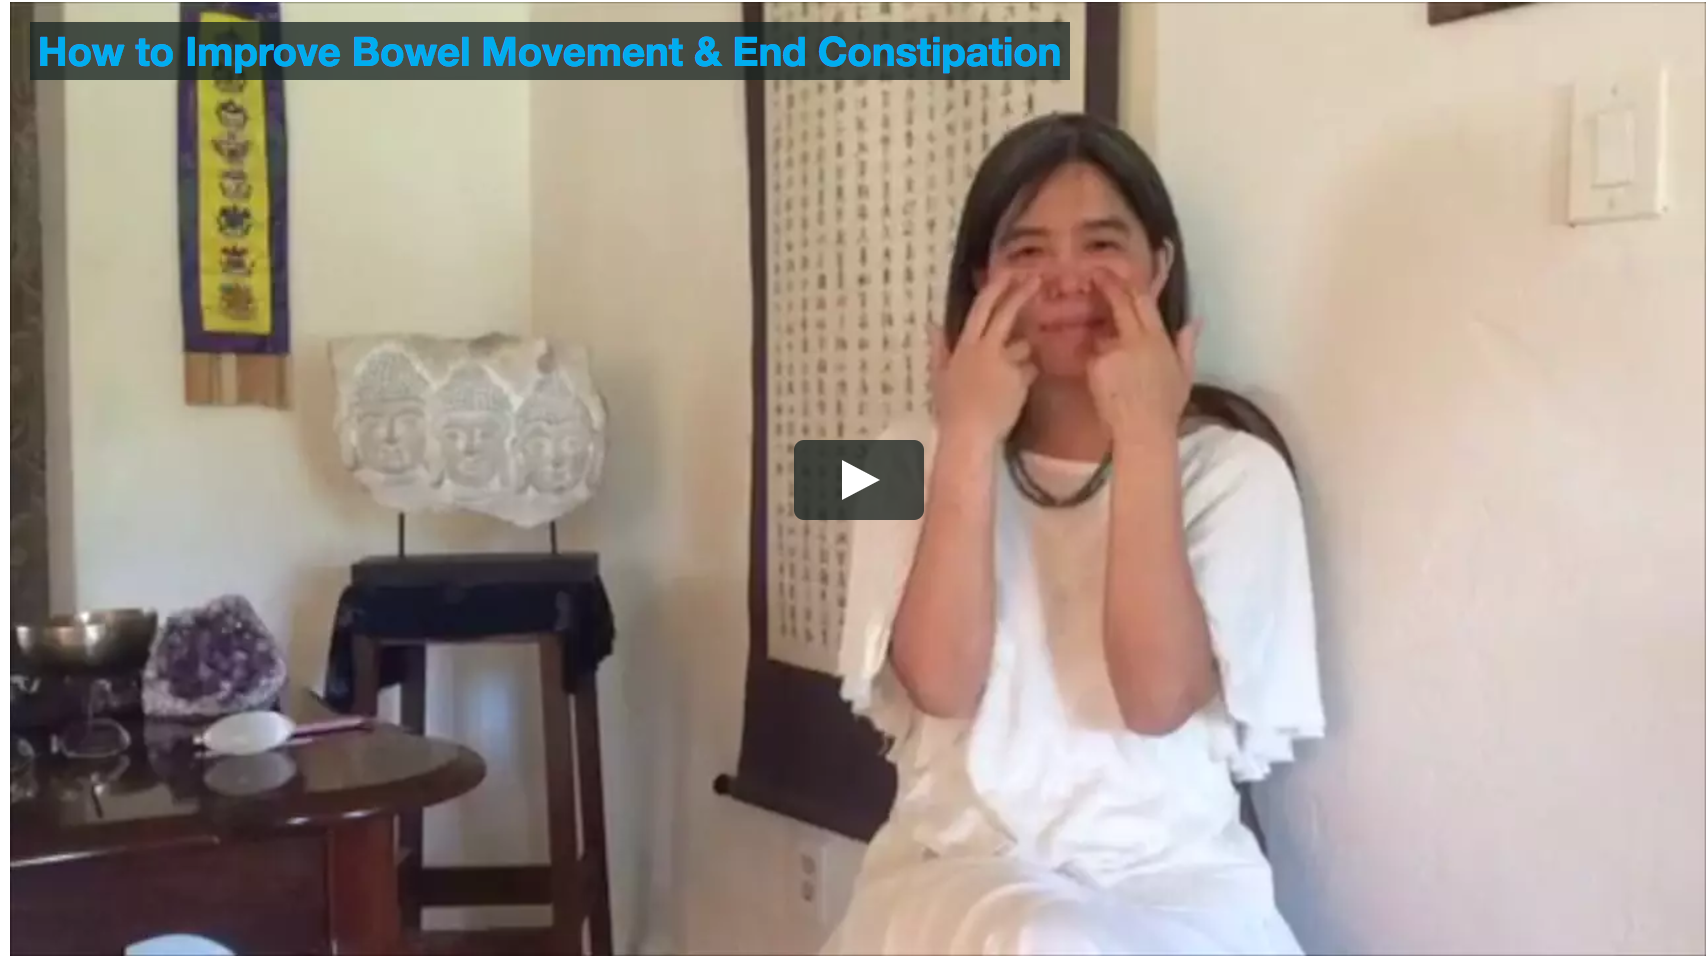 How to end constipation & improve your bowel movements in 5 minutes a day